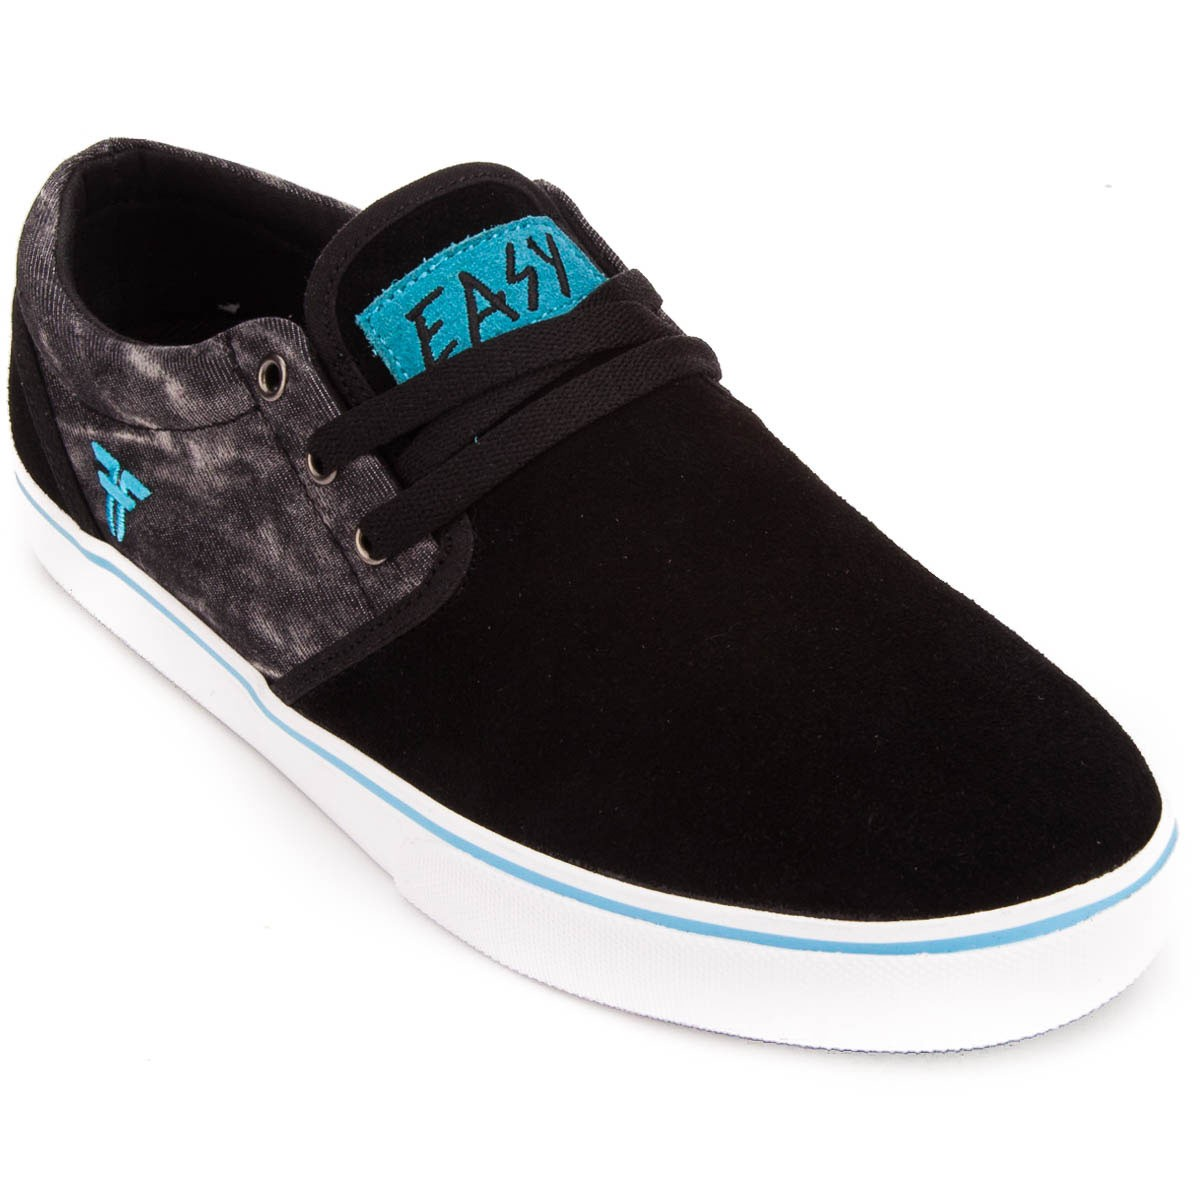 Fallen Shoes The Easy Slash Pro Black Acid Island Blue New Mens Skateboard Sneakers